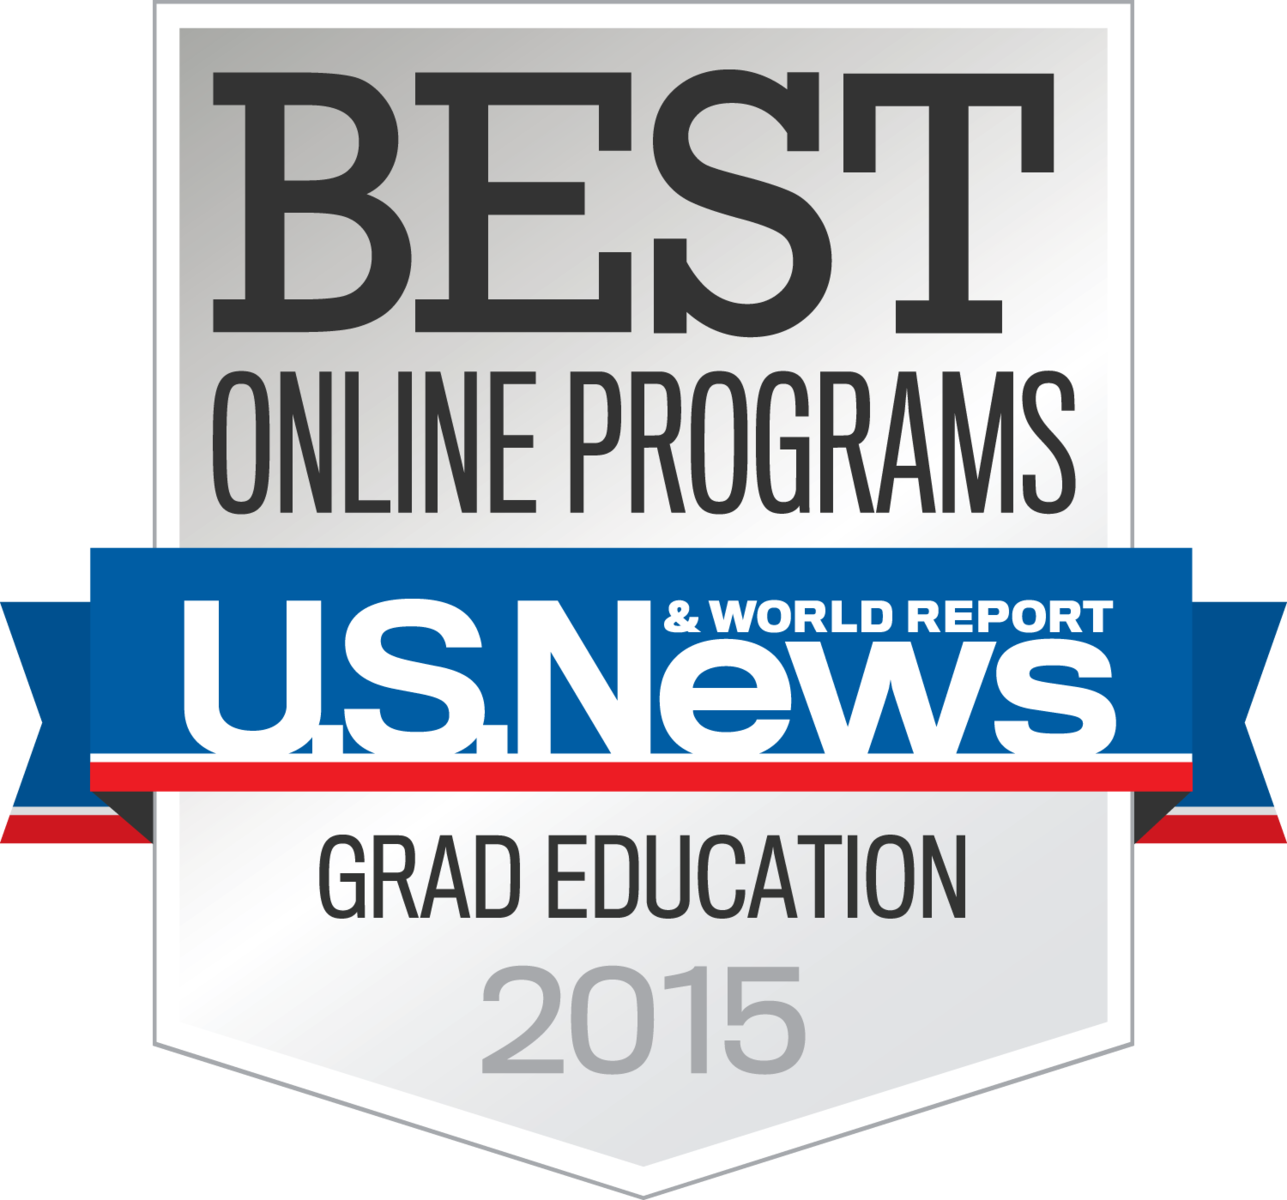 U S News and World Report Best Grad Education 2015 Badge